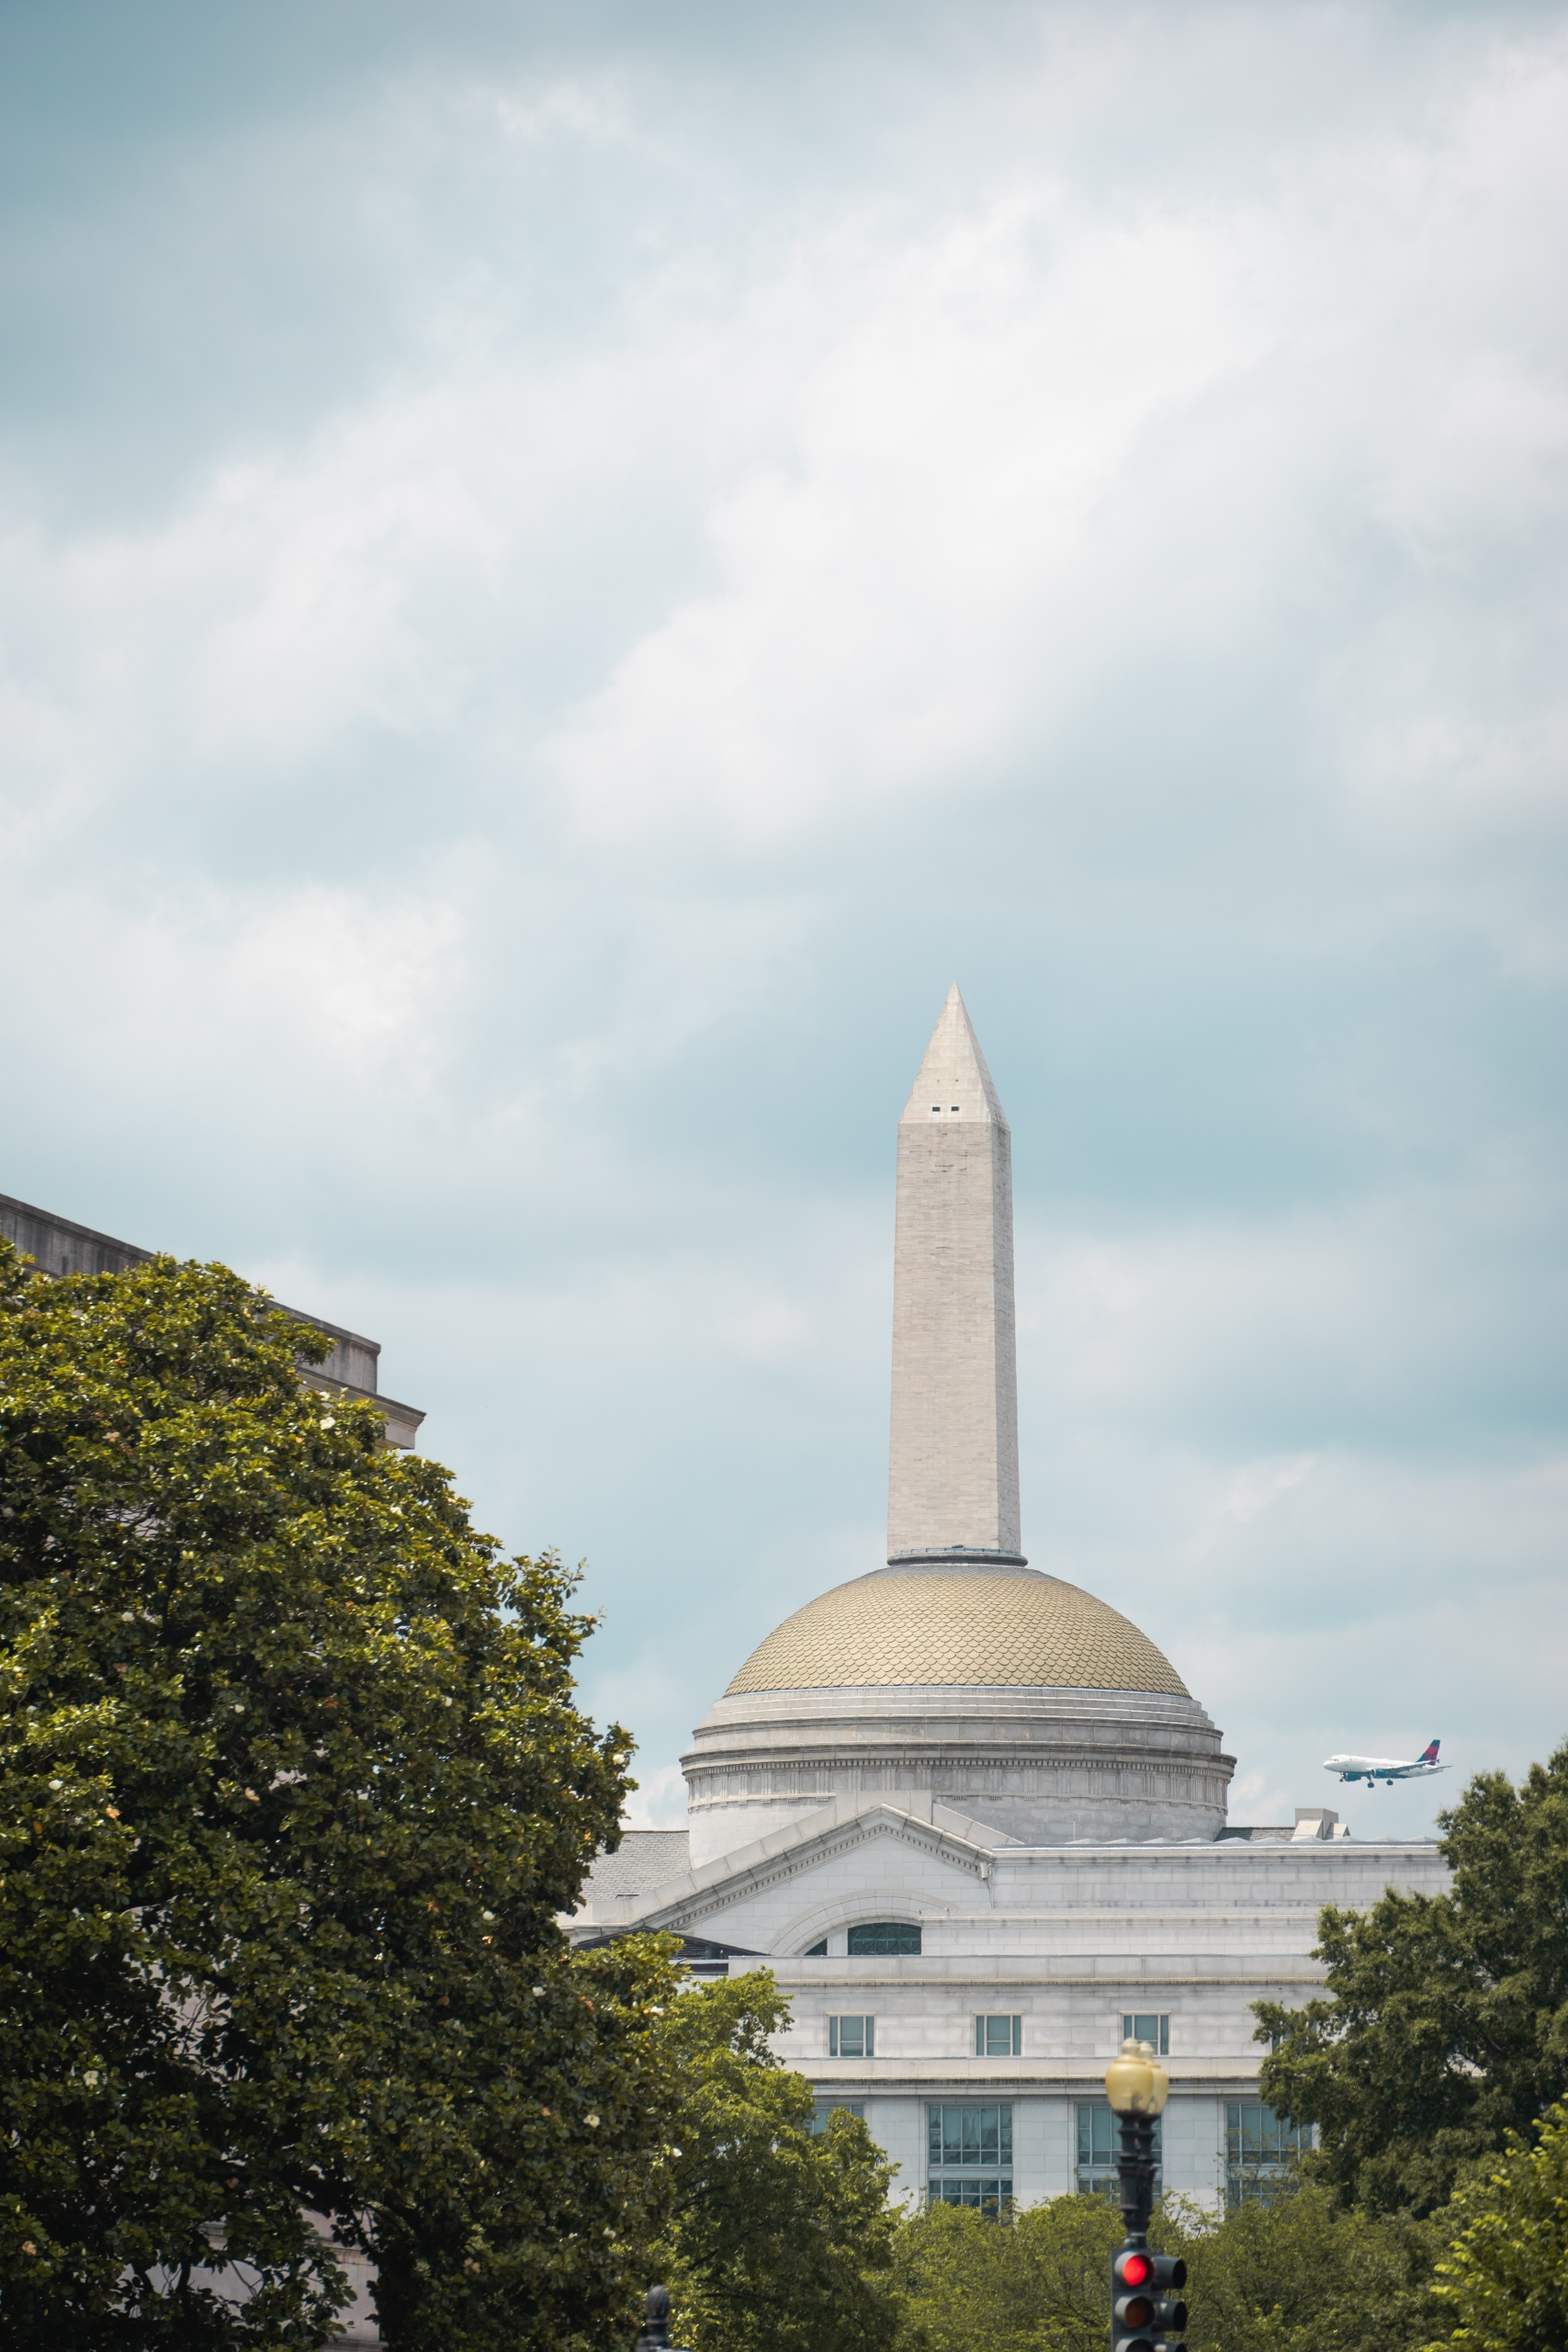 washington dc, washington monument, smithsonian, natural history museum, airplane, dca,